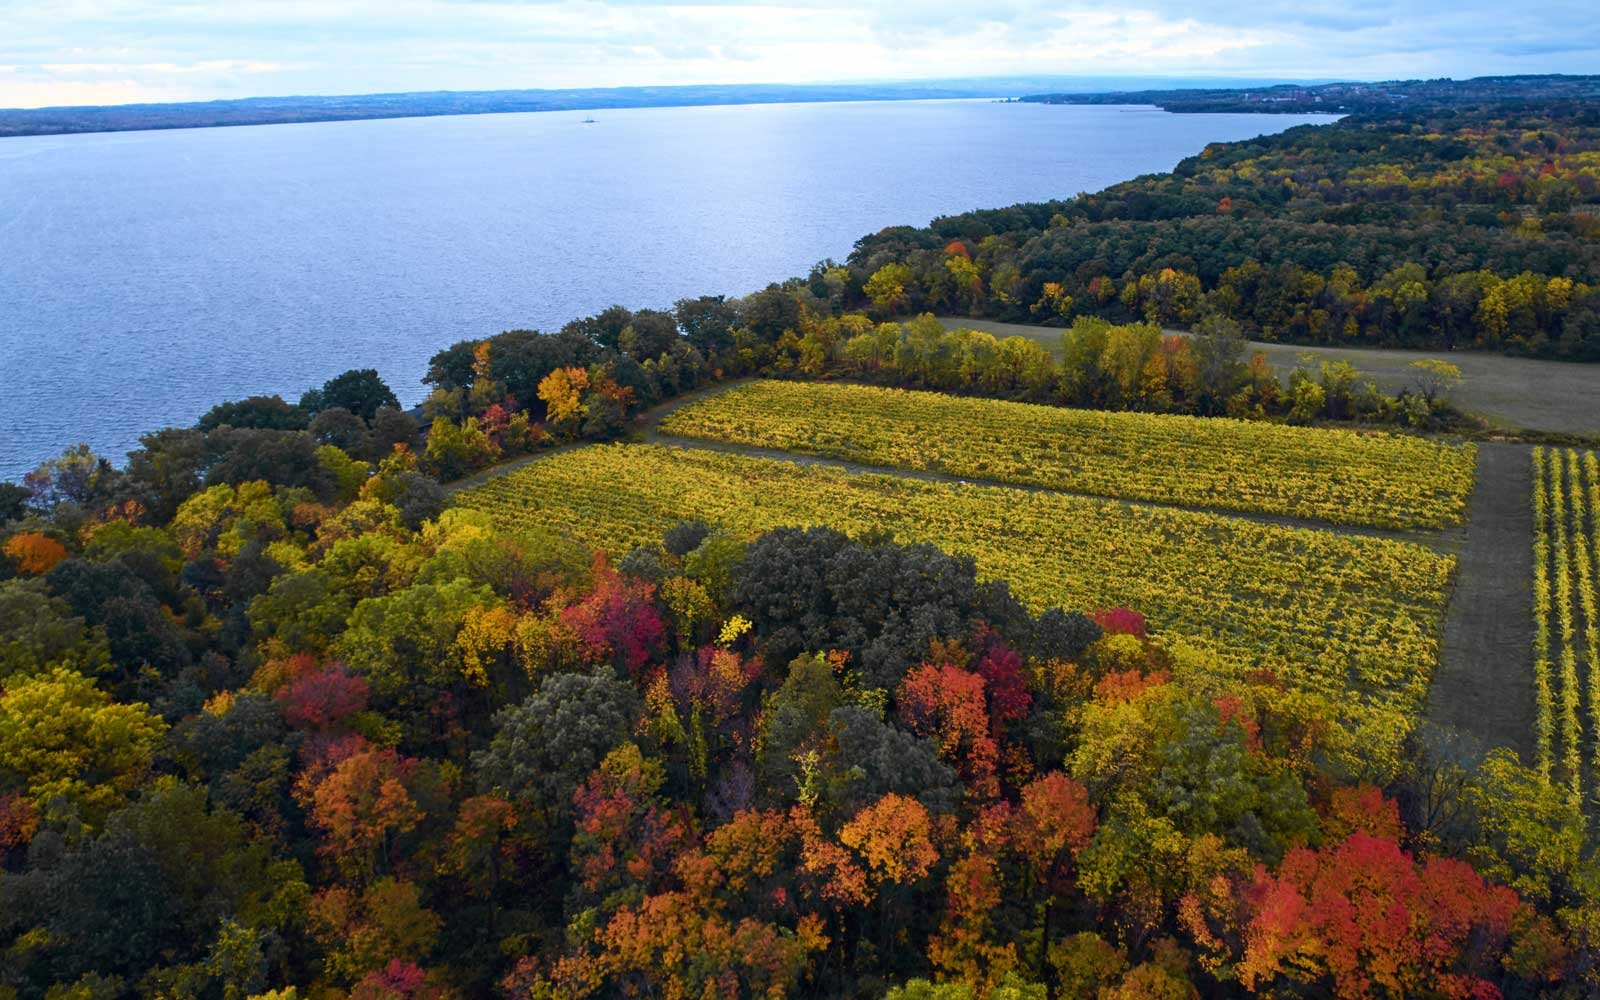 Serenity Vineyards at Seneca Lake, in New York's Finger Lakes region.